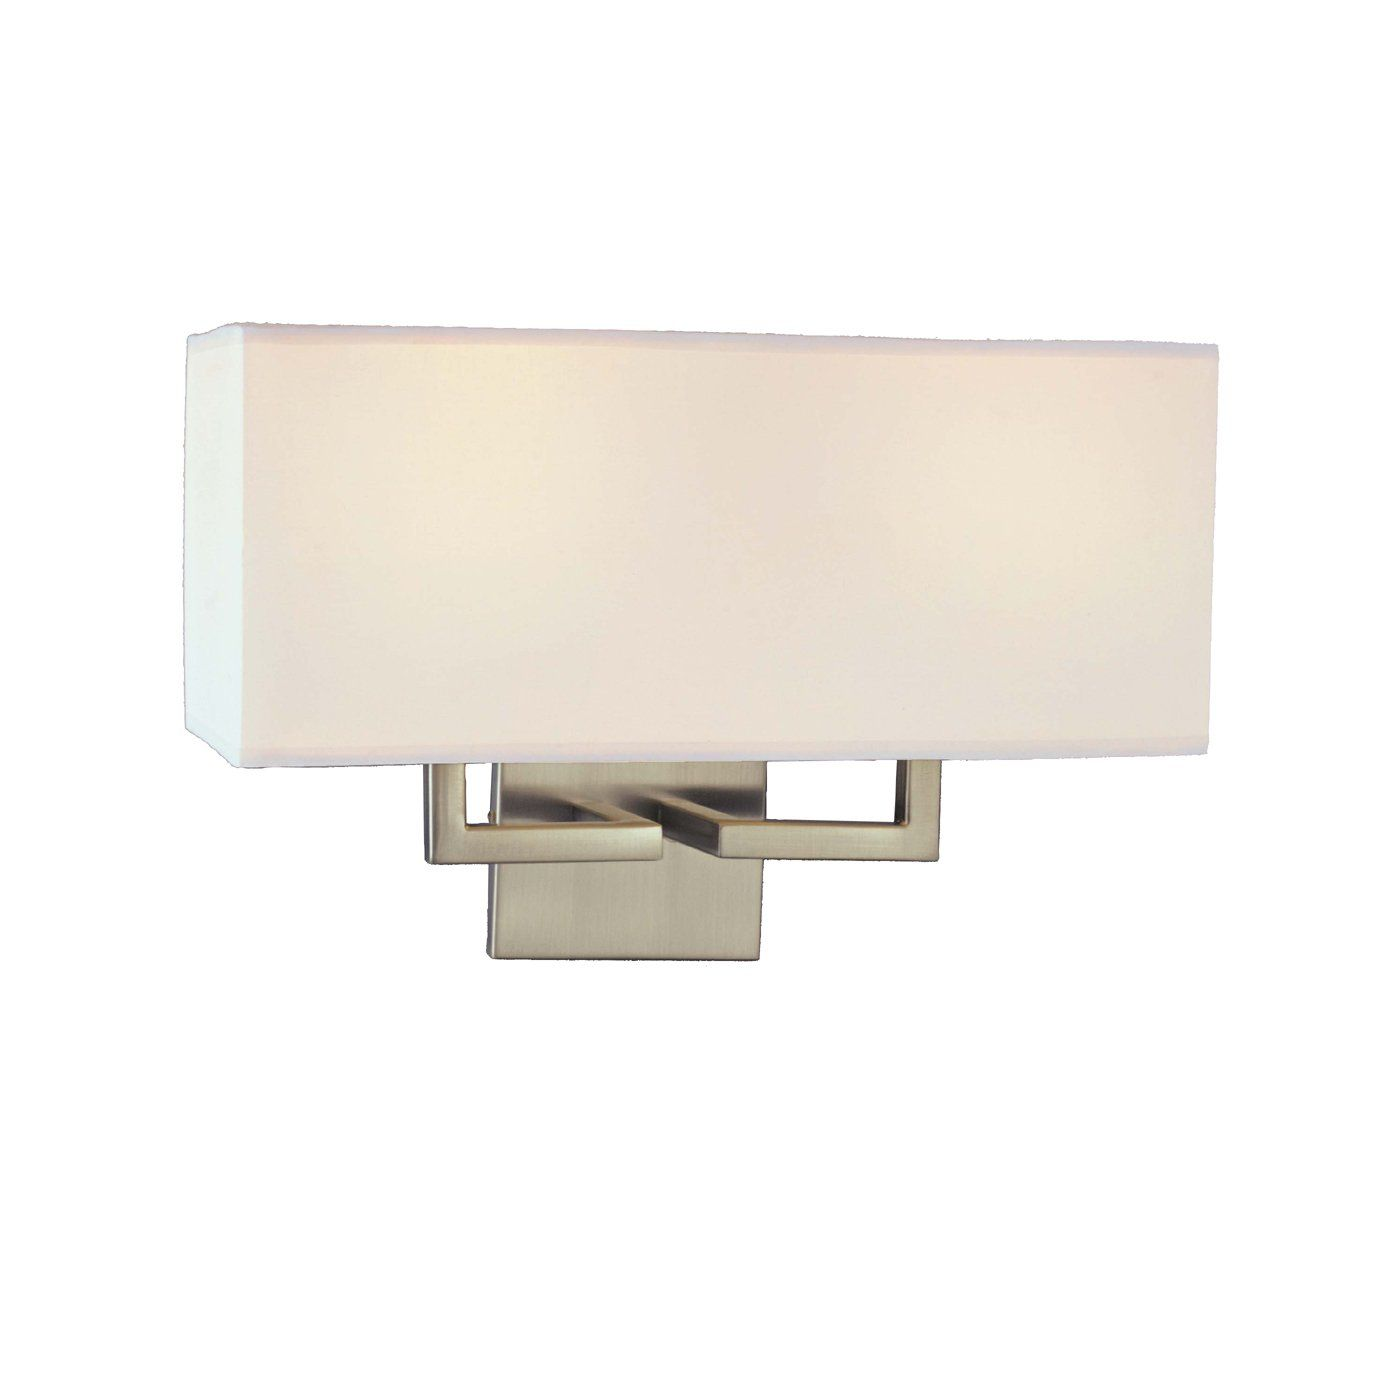 Inside Wall Light Fixtures Light Walls Wall Sconces And Walls - 2 light bathroom wall sconce